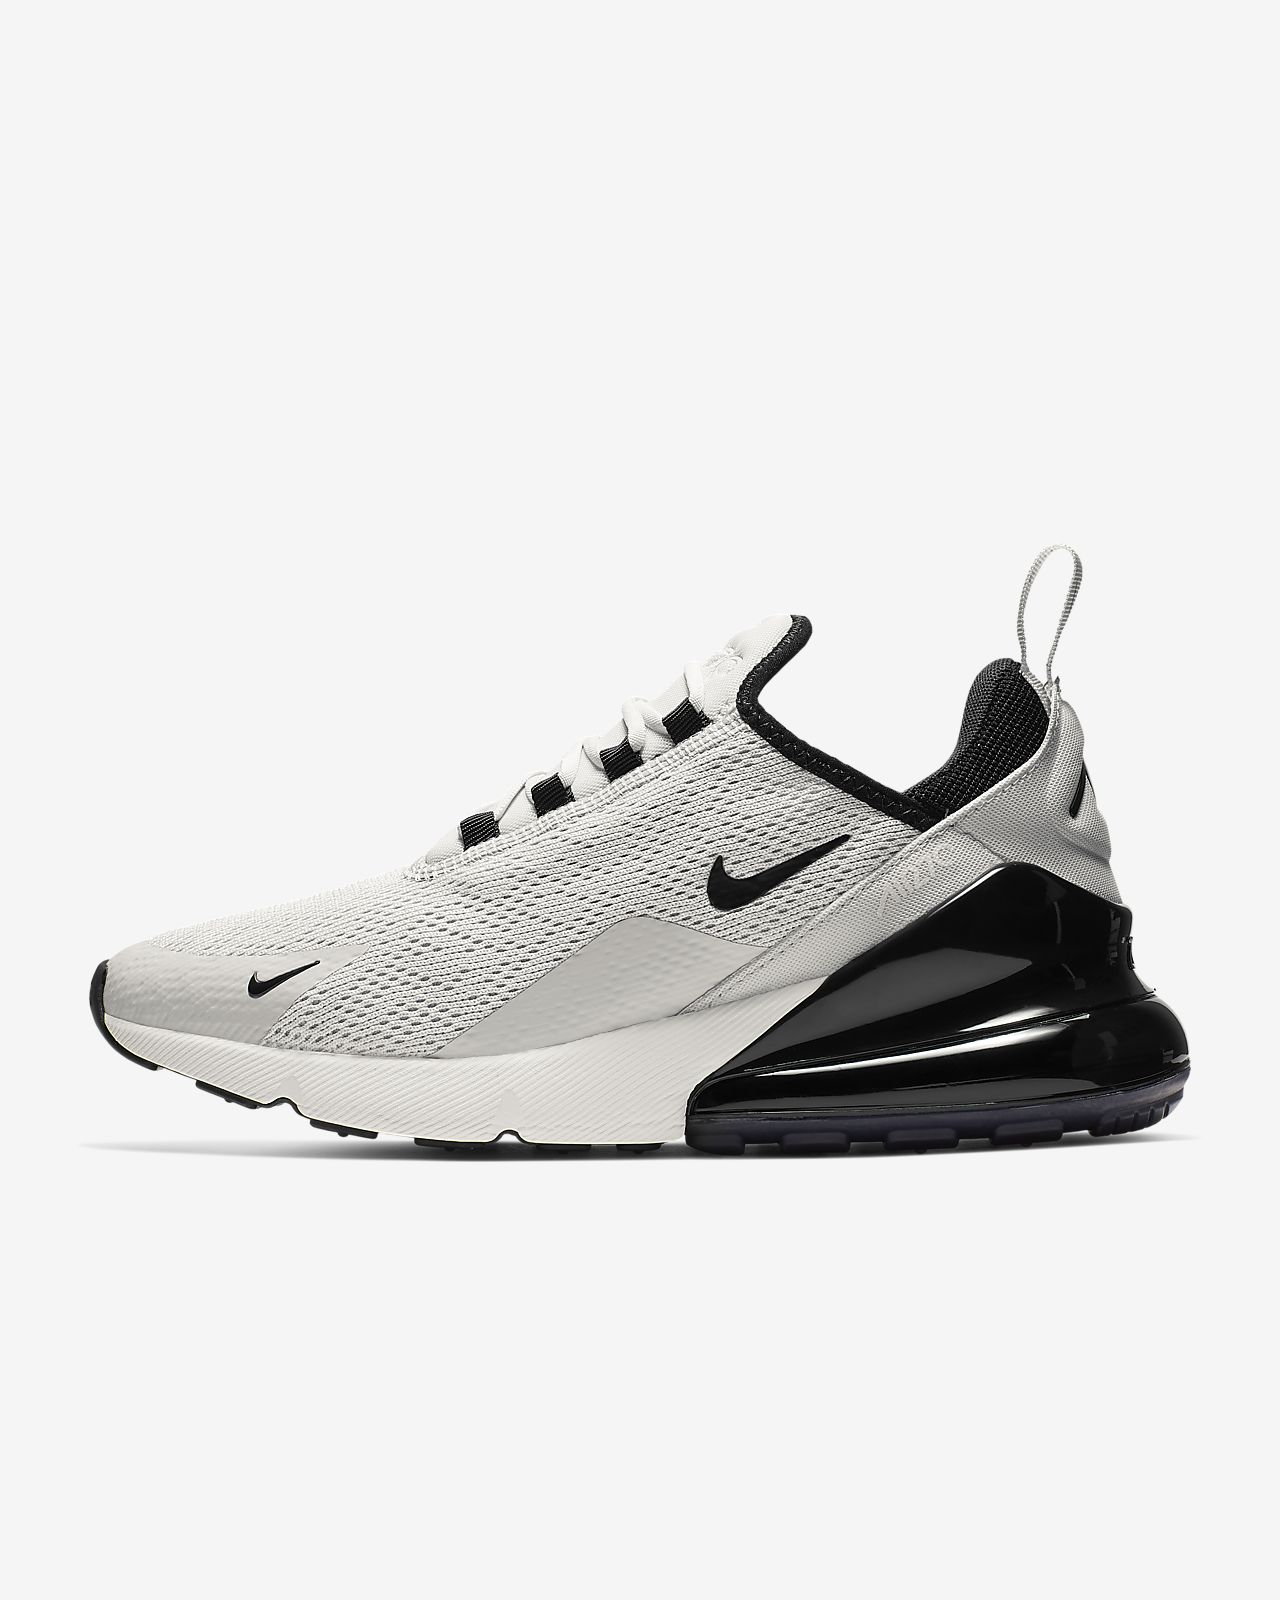 in stock 59e1d 0f430 Women s Shoe. Nike Air Max 270